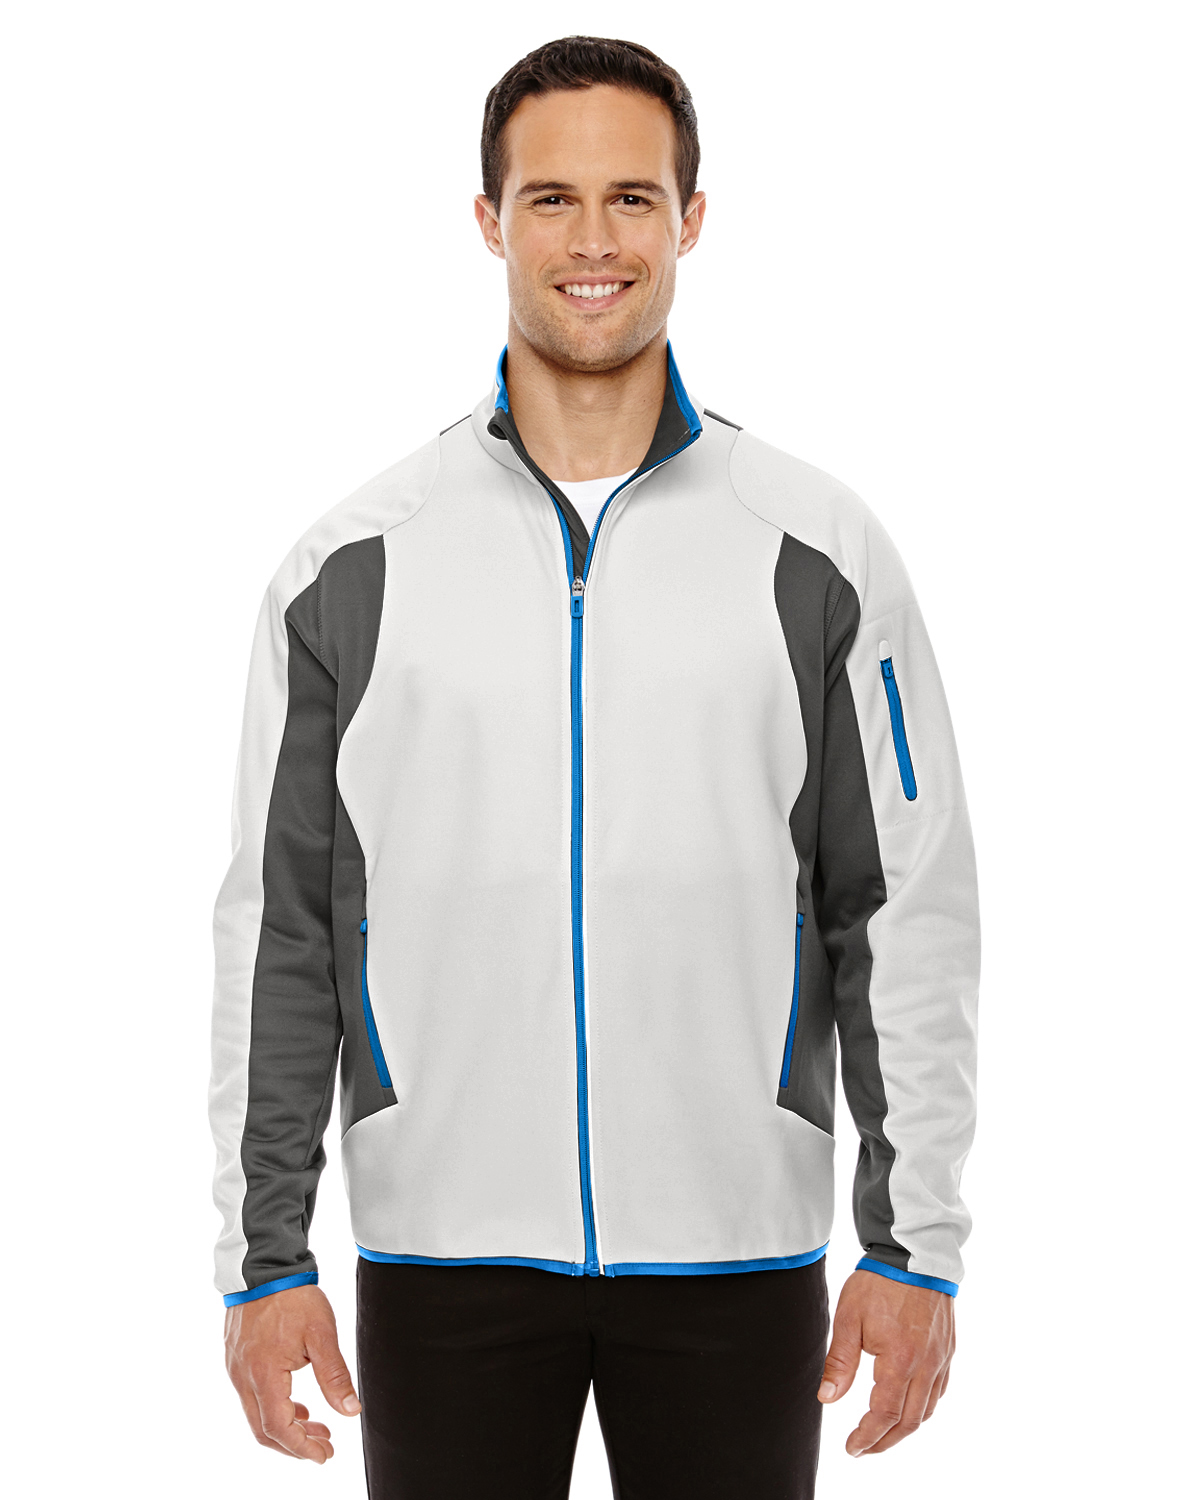 Ash City - North End 88230 - Men's Motion Interactive ColorBlock Performance Fleece Jacket